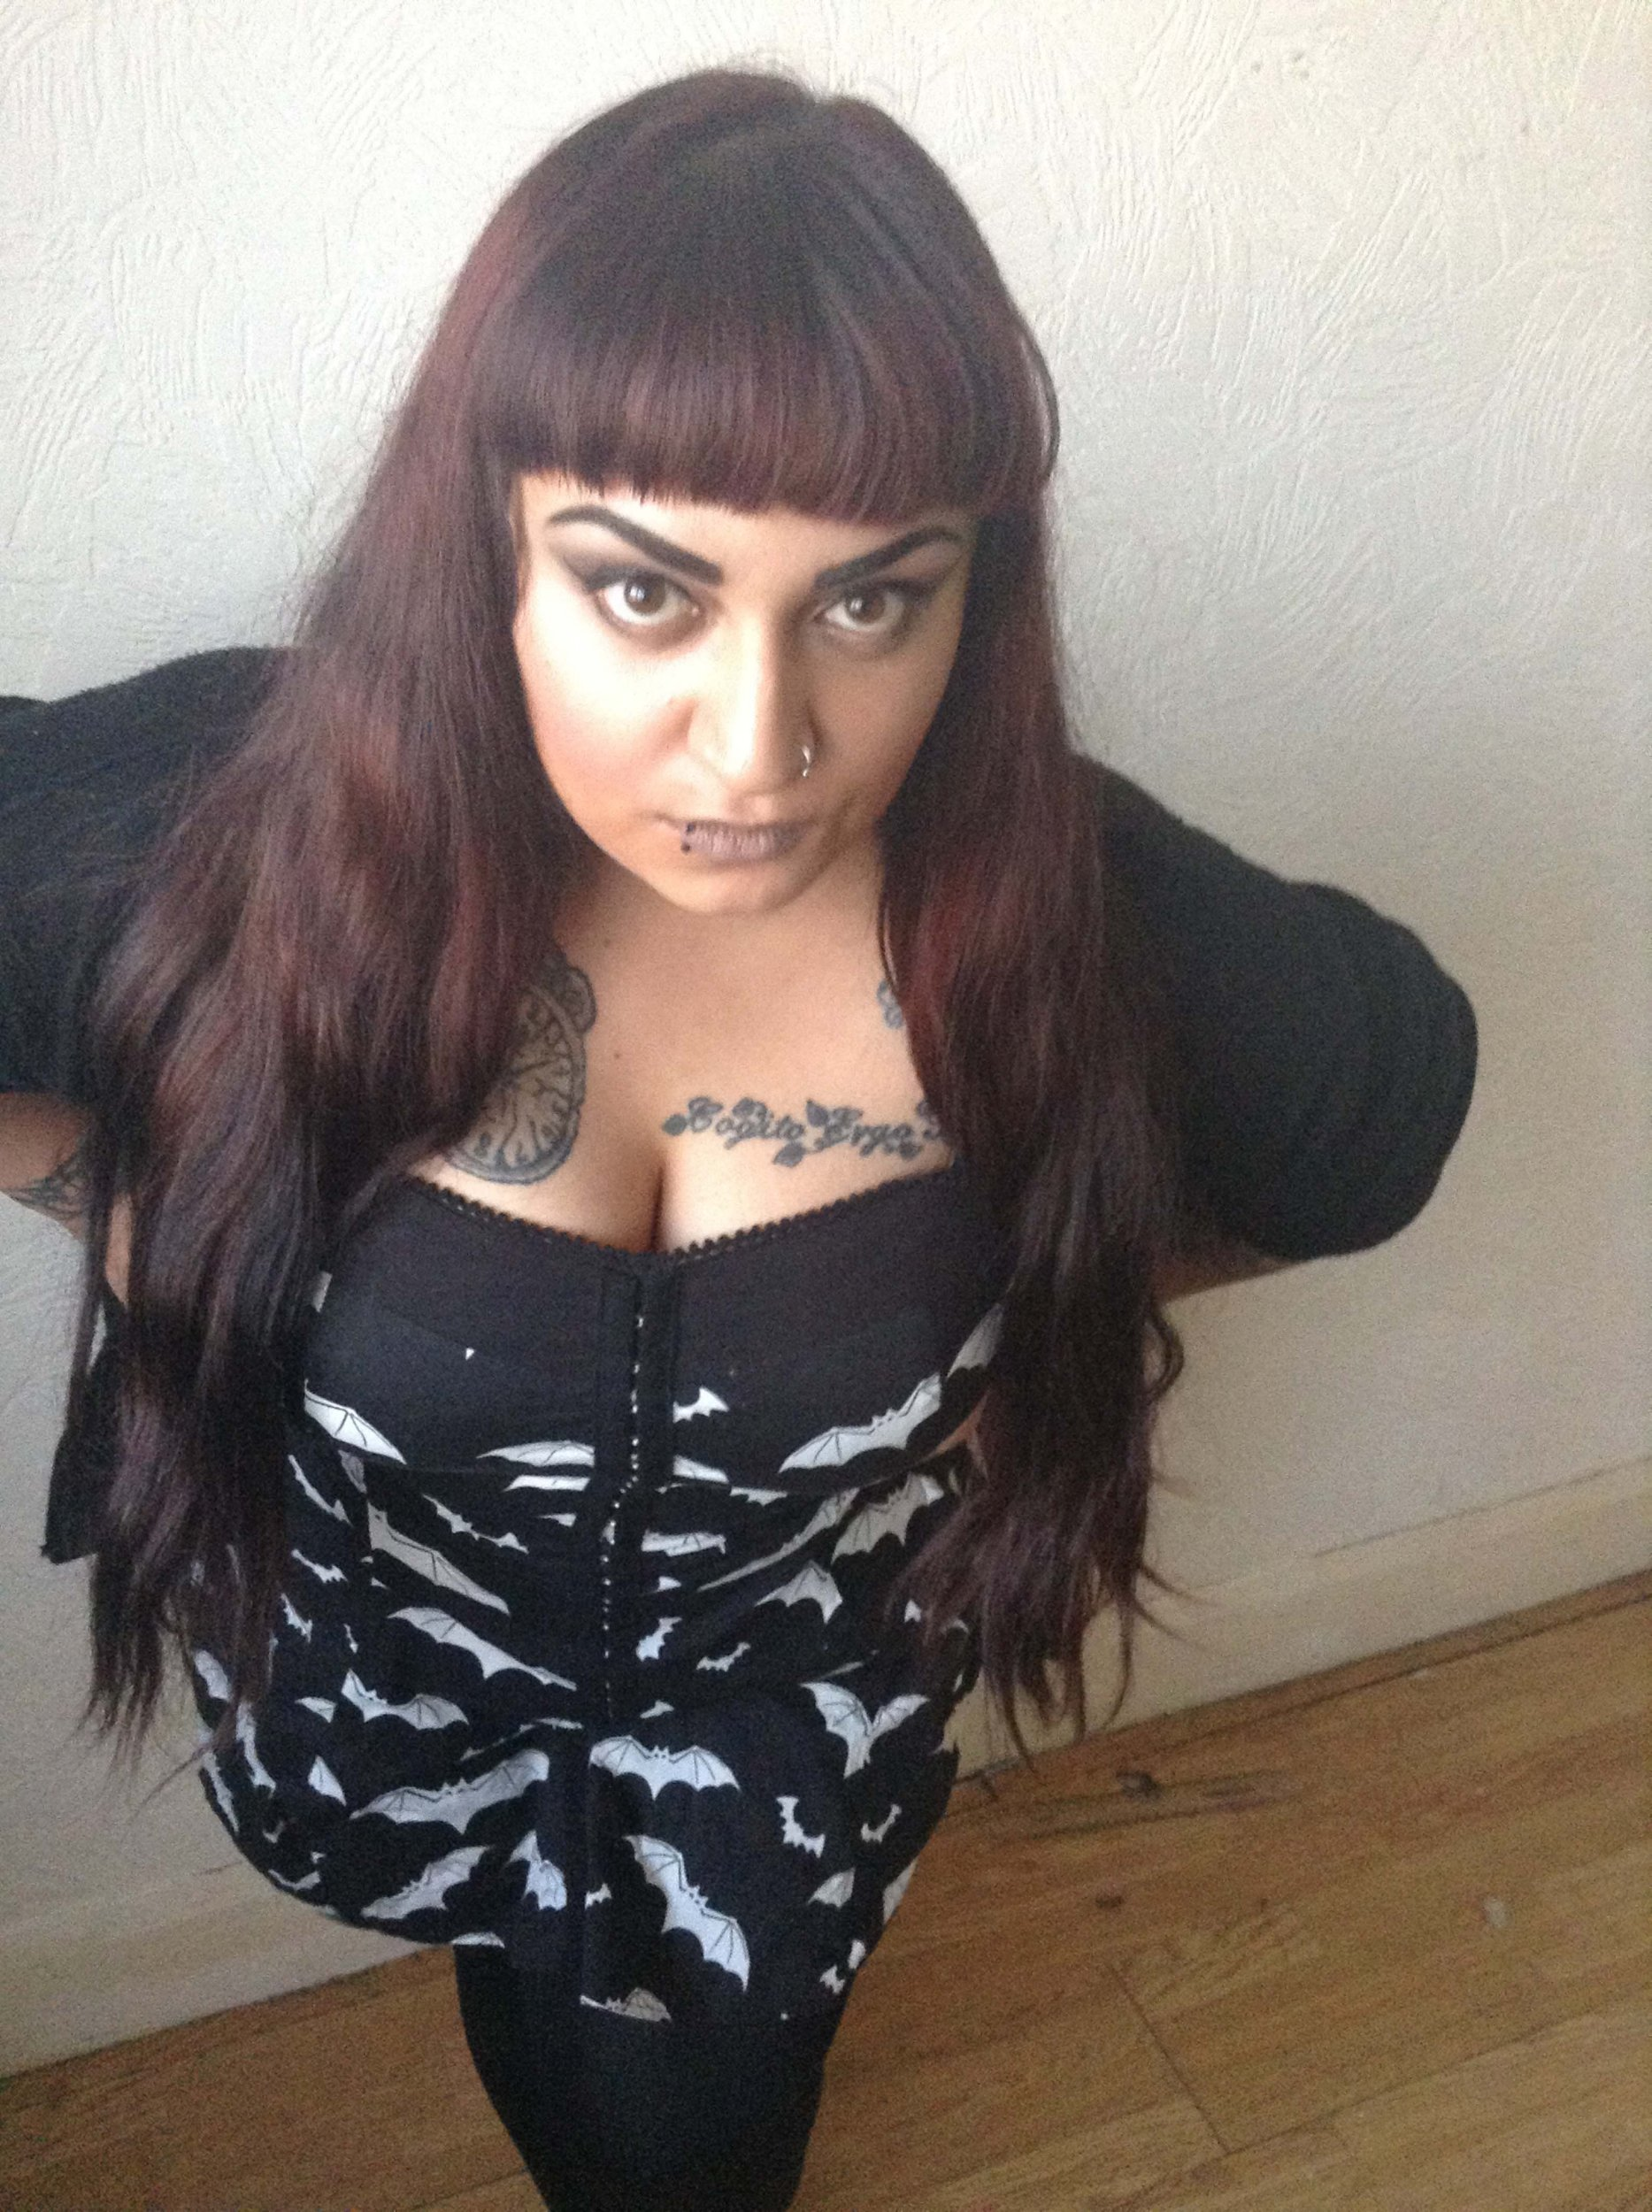 PIC FROM MERCURY PRESS (PICTURED: AISAH KHATOON, 25, IN THE OUTFIT SHE WORE AT TESCO WHEN SHE CLAIMS TO HAVE BEEN 'HUMILIATED AND RIDICULED') A goth claims she was ëhumiliated and ridiculedí for the way she dressed when she visited Tesco ñ by two members of STAFF. Aisah Khatoon, 25, had visited the supermarket in Beckenham, London, with a friend when she noticed the two employees stood in an aisle. The full-time carer claims the two staff members began whispering and pointing at her, making Aisah feel like she was ësome kind of freak showí. In disbelief, Aisah told her friend Claire Williams, 26, what had happened and the duo returned to the aisle where the women were stood. SEE MERCURY COPY